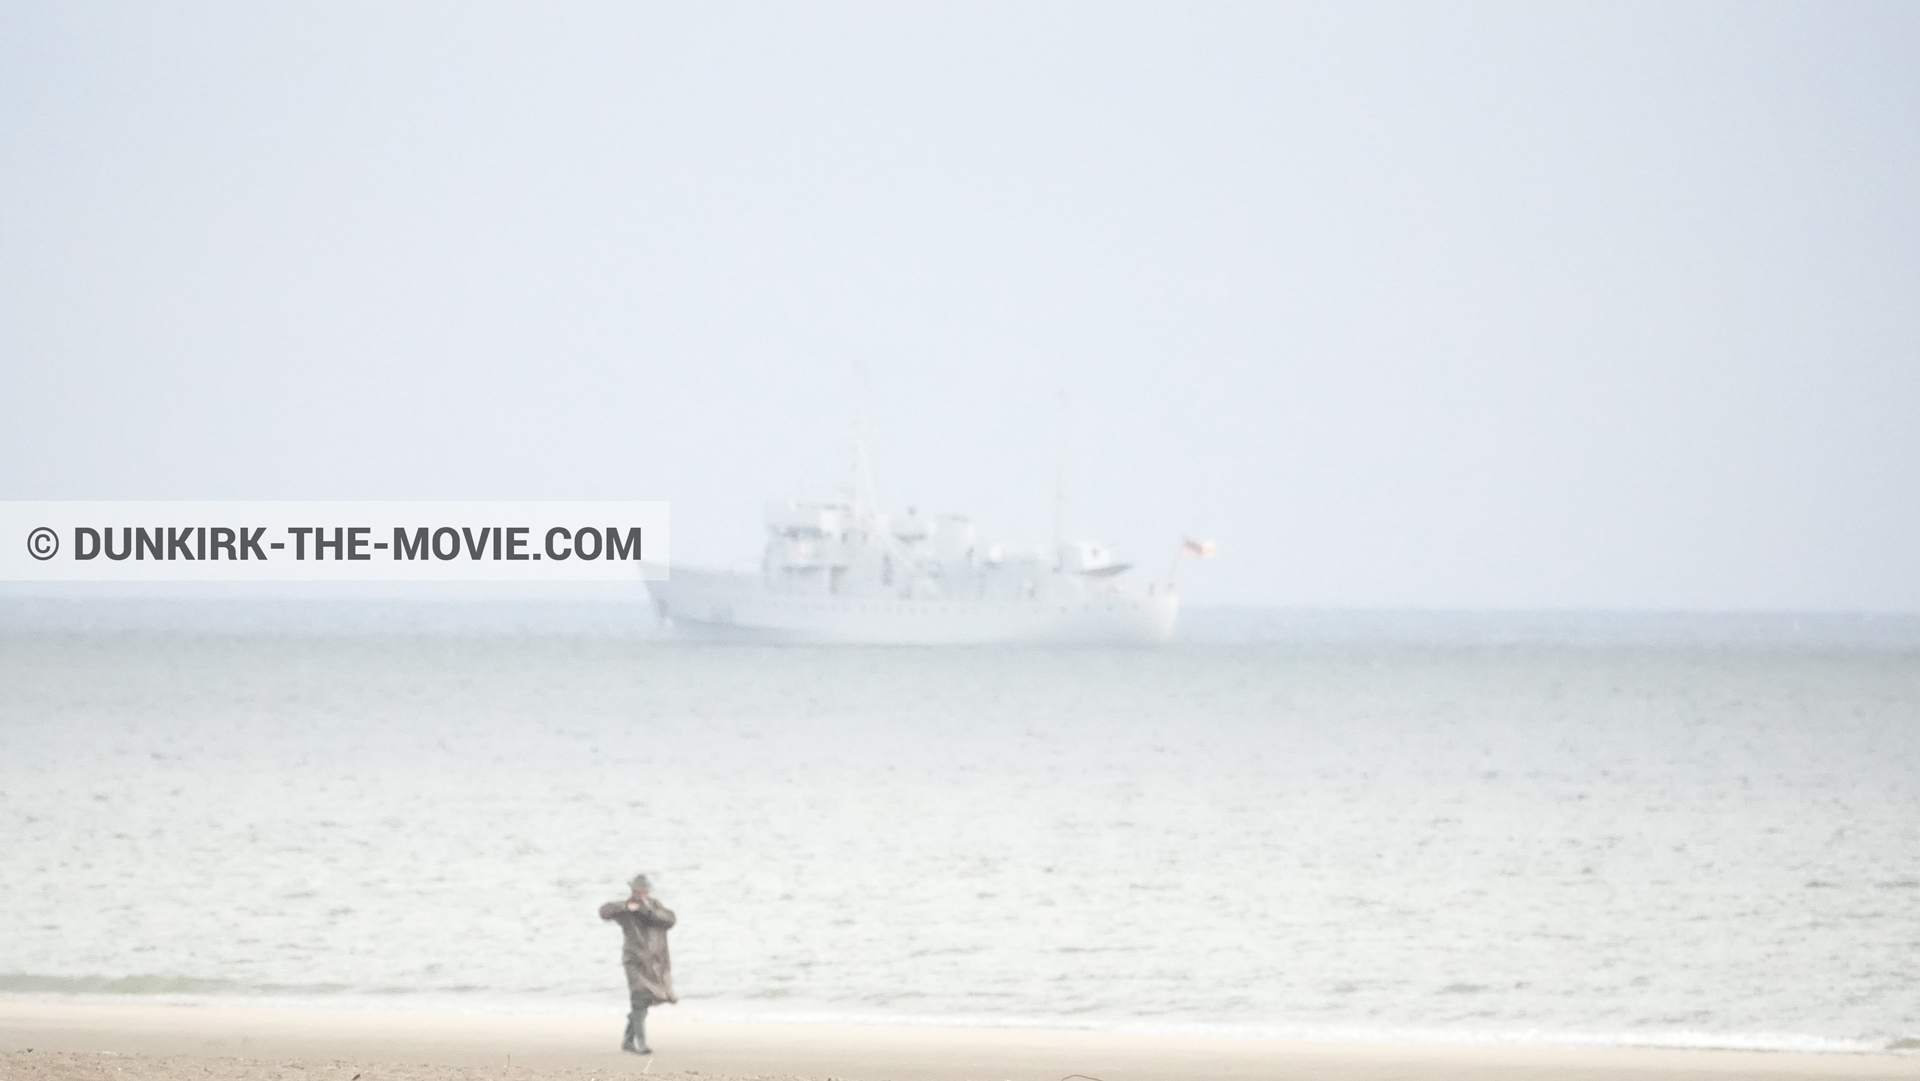 Picture with boat, supernumeraries, H11 - MLV Castor, beach,  from behind the scene of the Dunkirk movie by Nolan